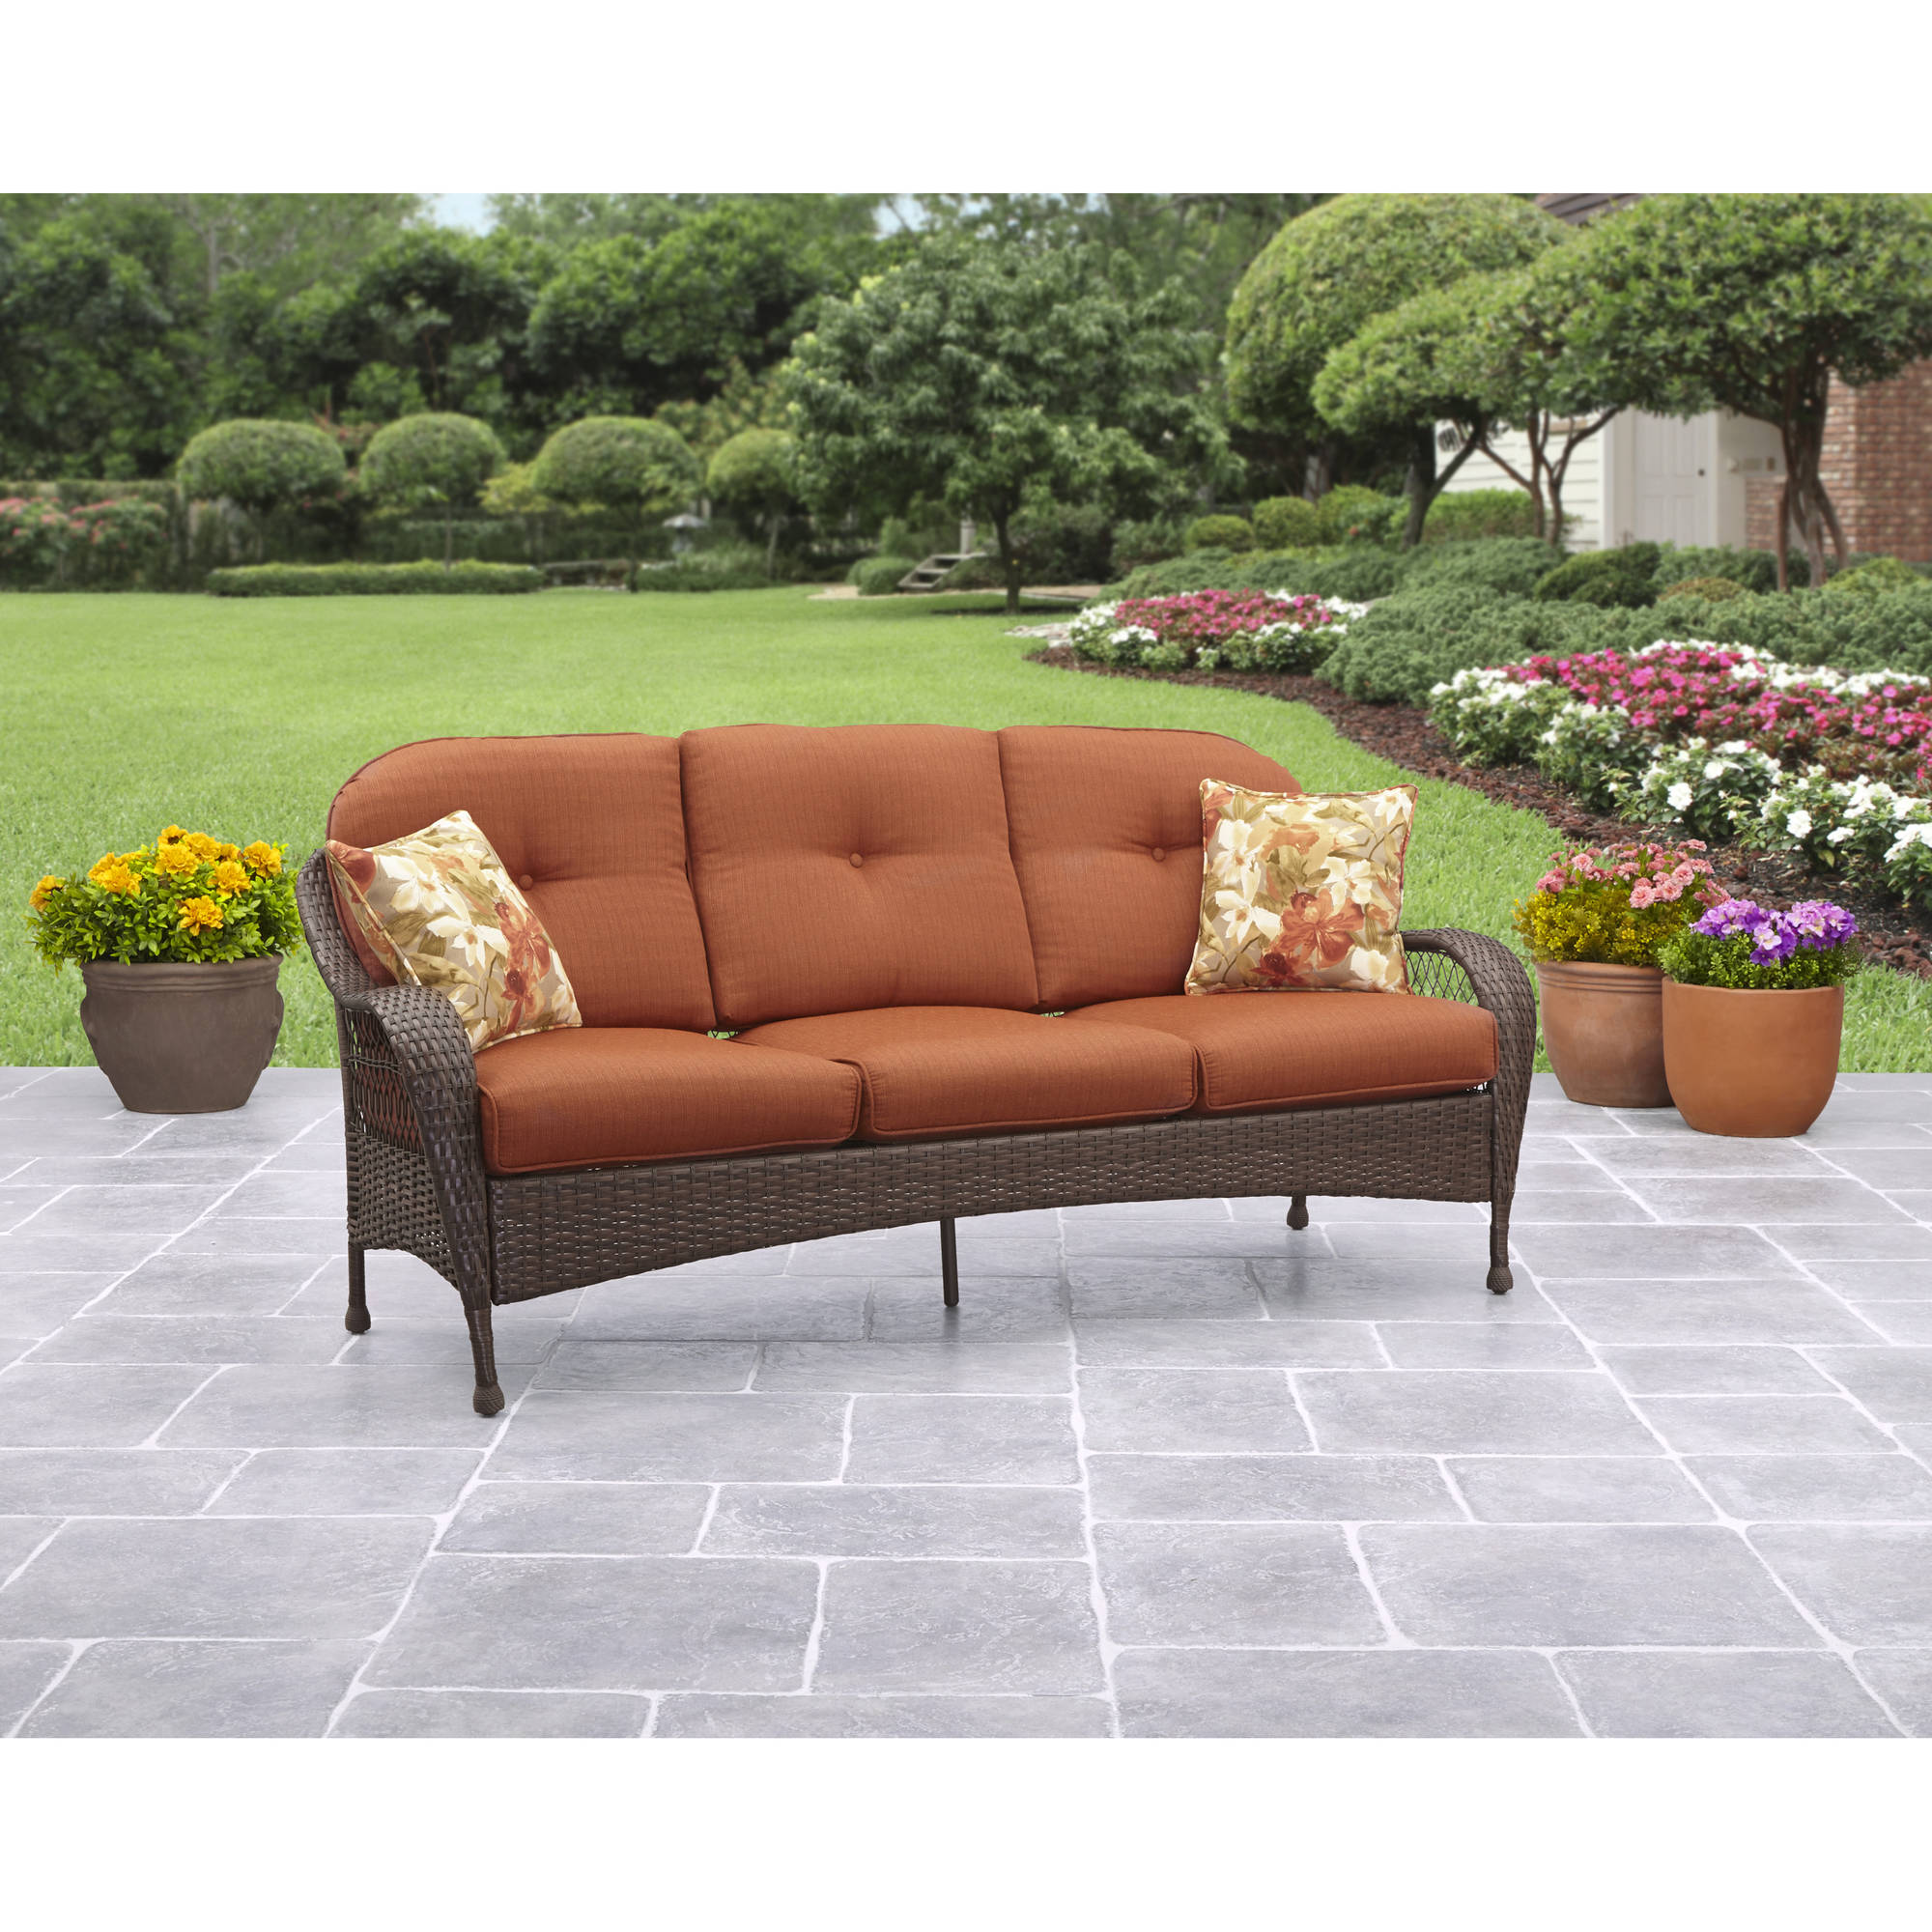 Awesome Outdoor Sofas 41 Living Room Sofa Inspiration with Outdoor Sofas